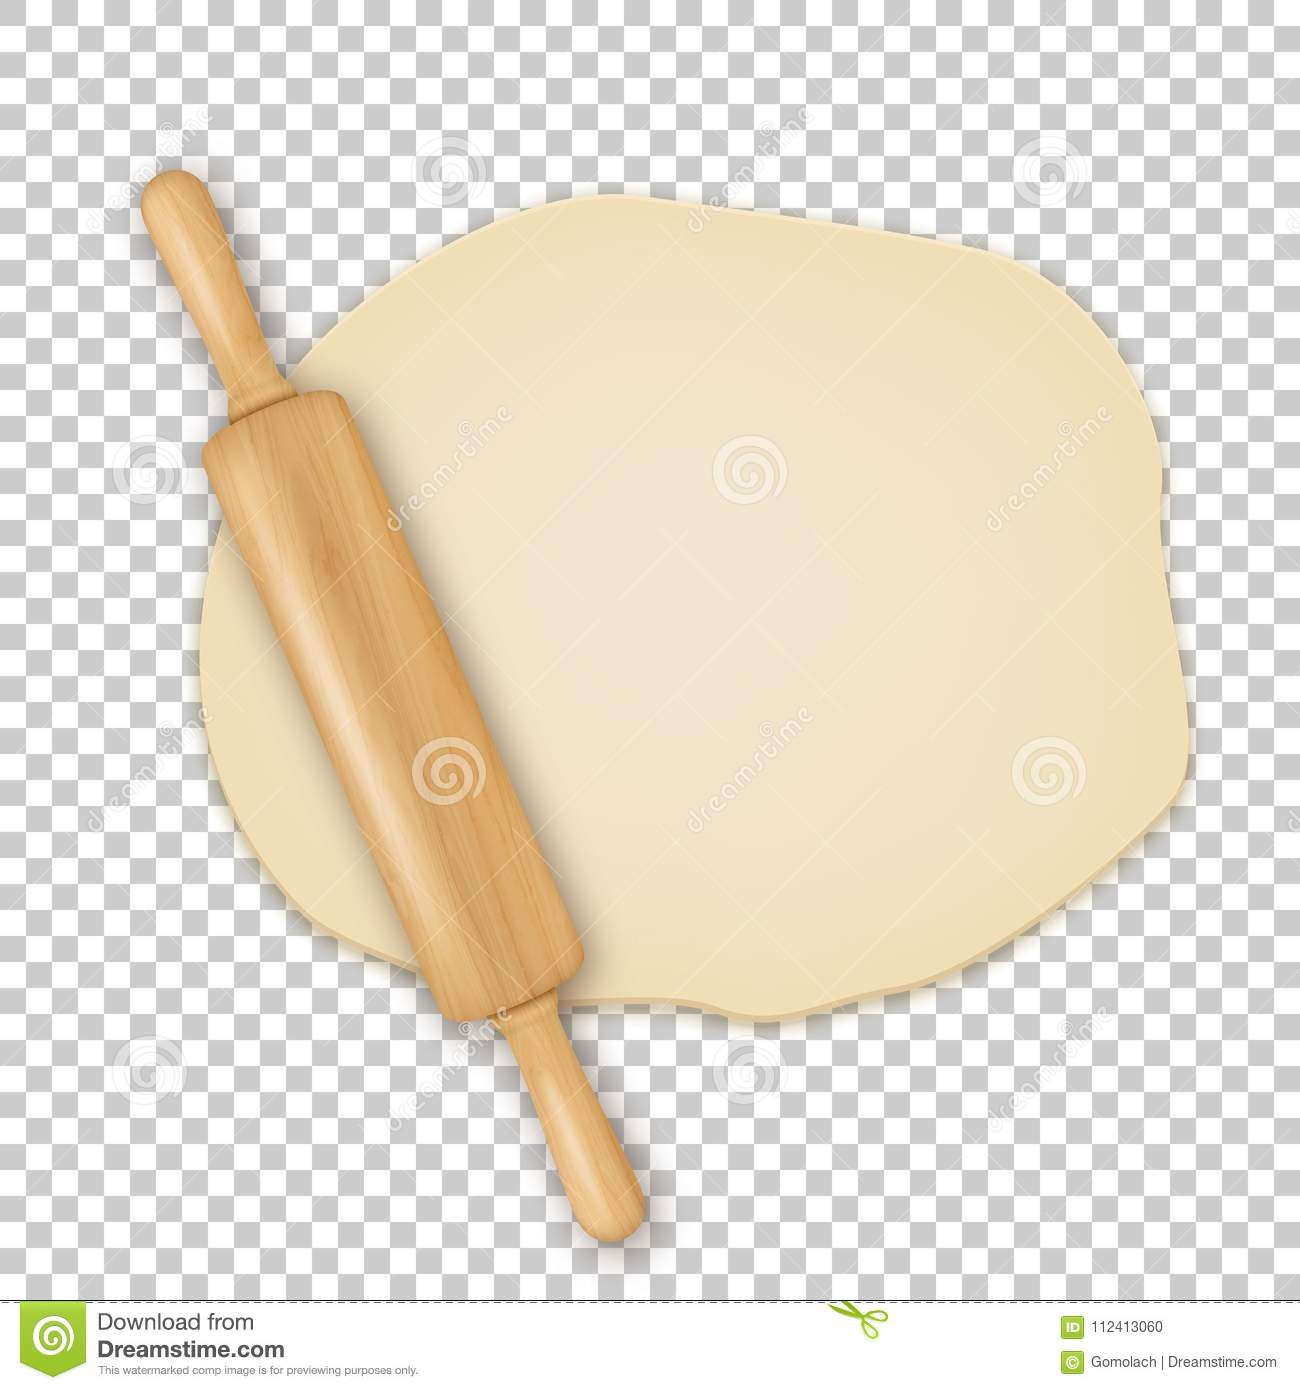 vector realistic 3d wooden rolling pin on roll out the dough closeup